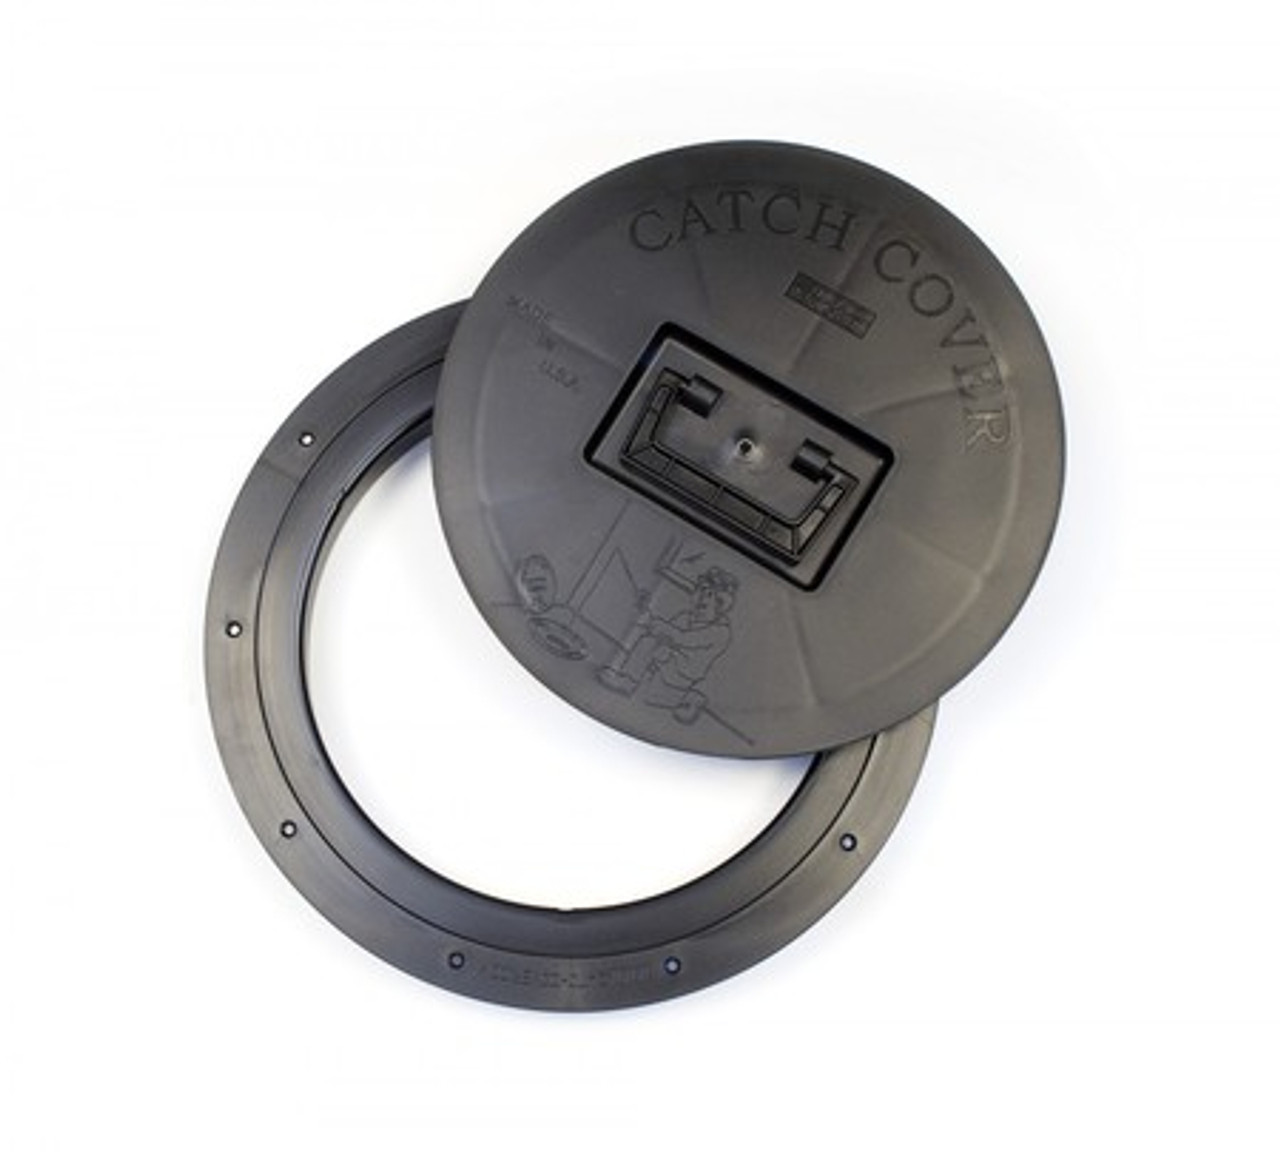 Round Catch Cover Hole Cover